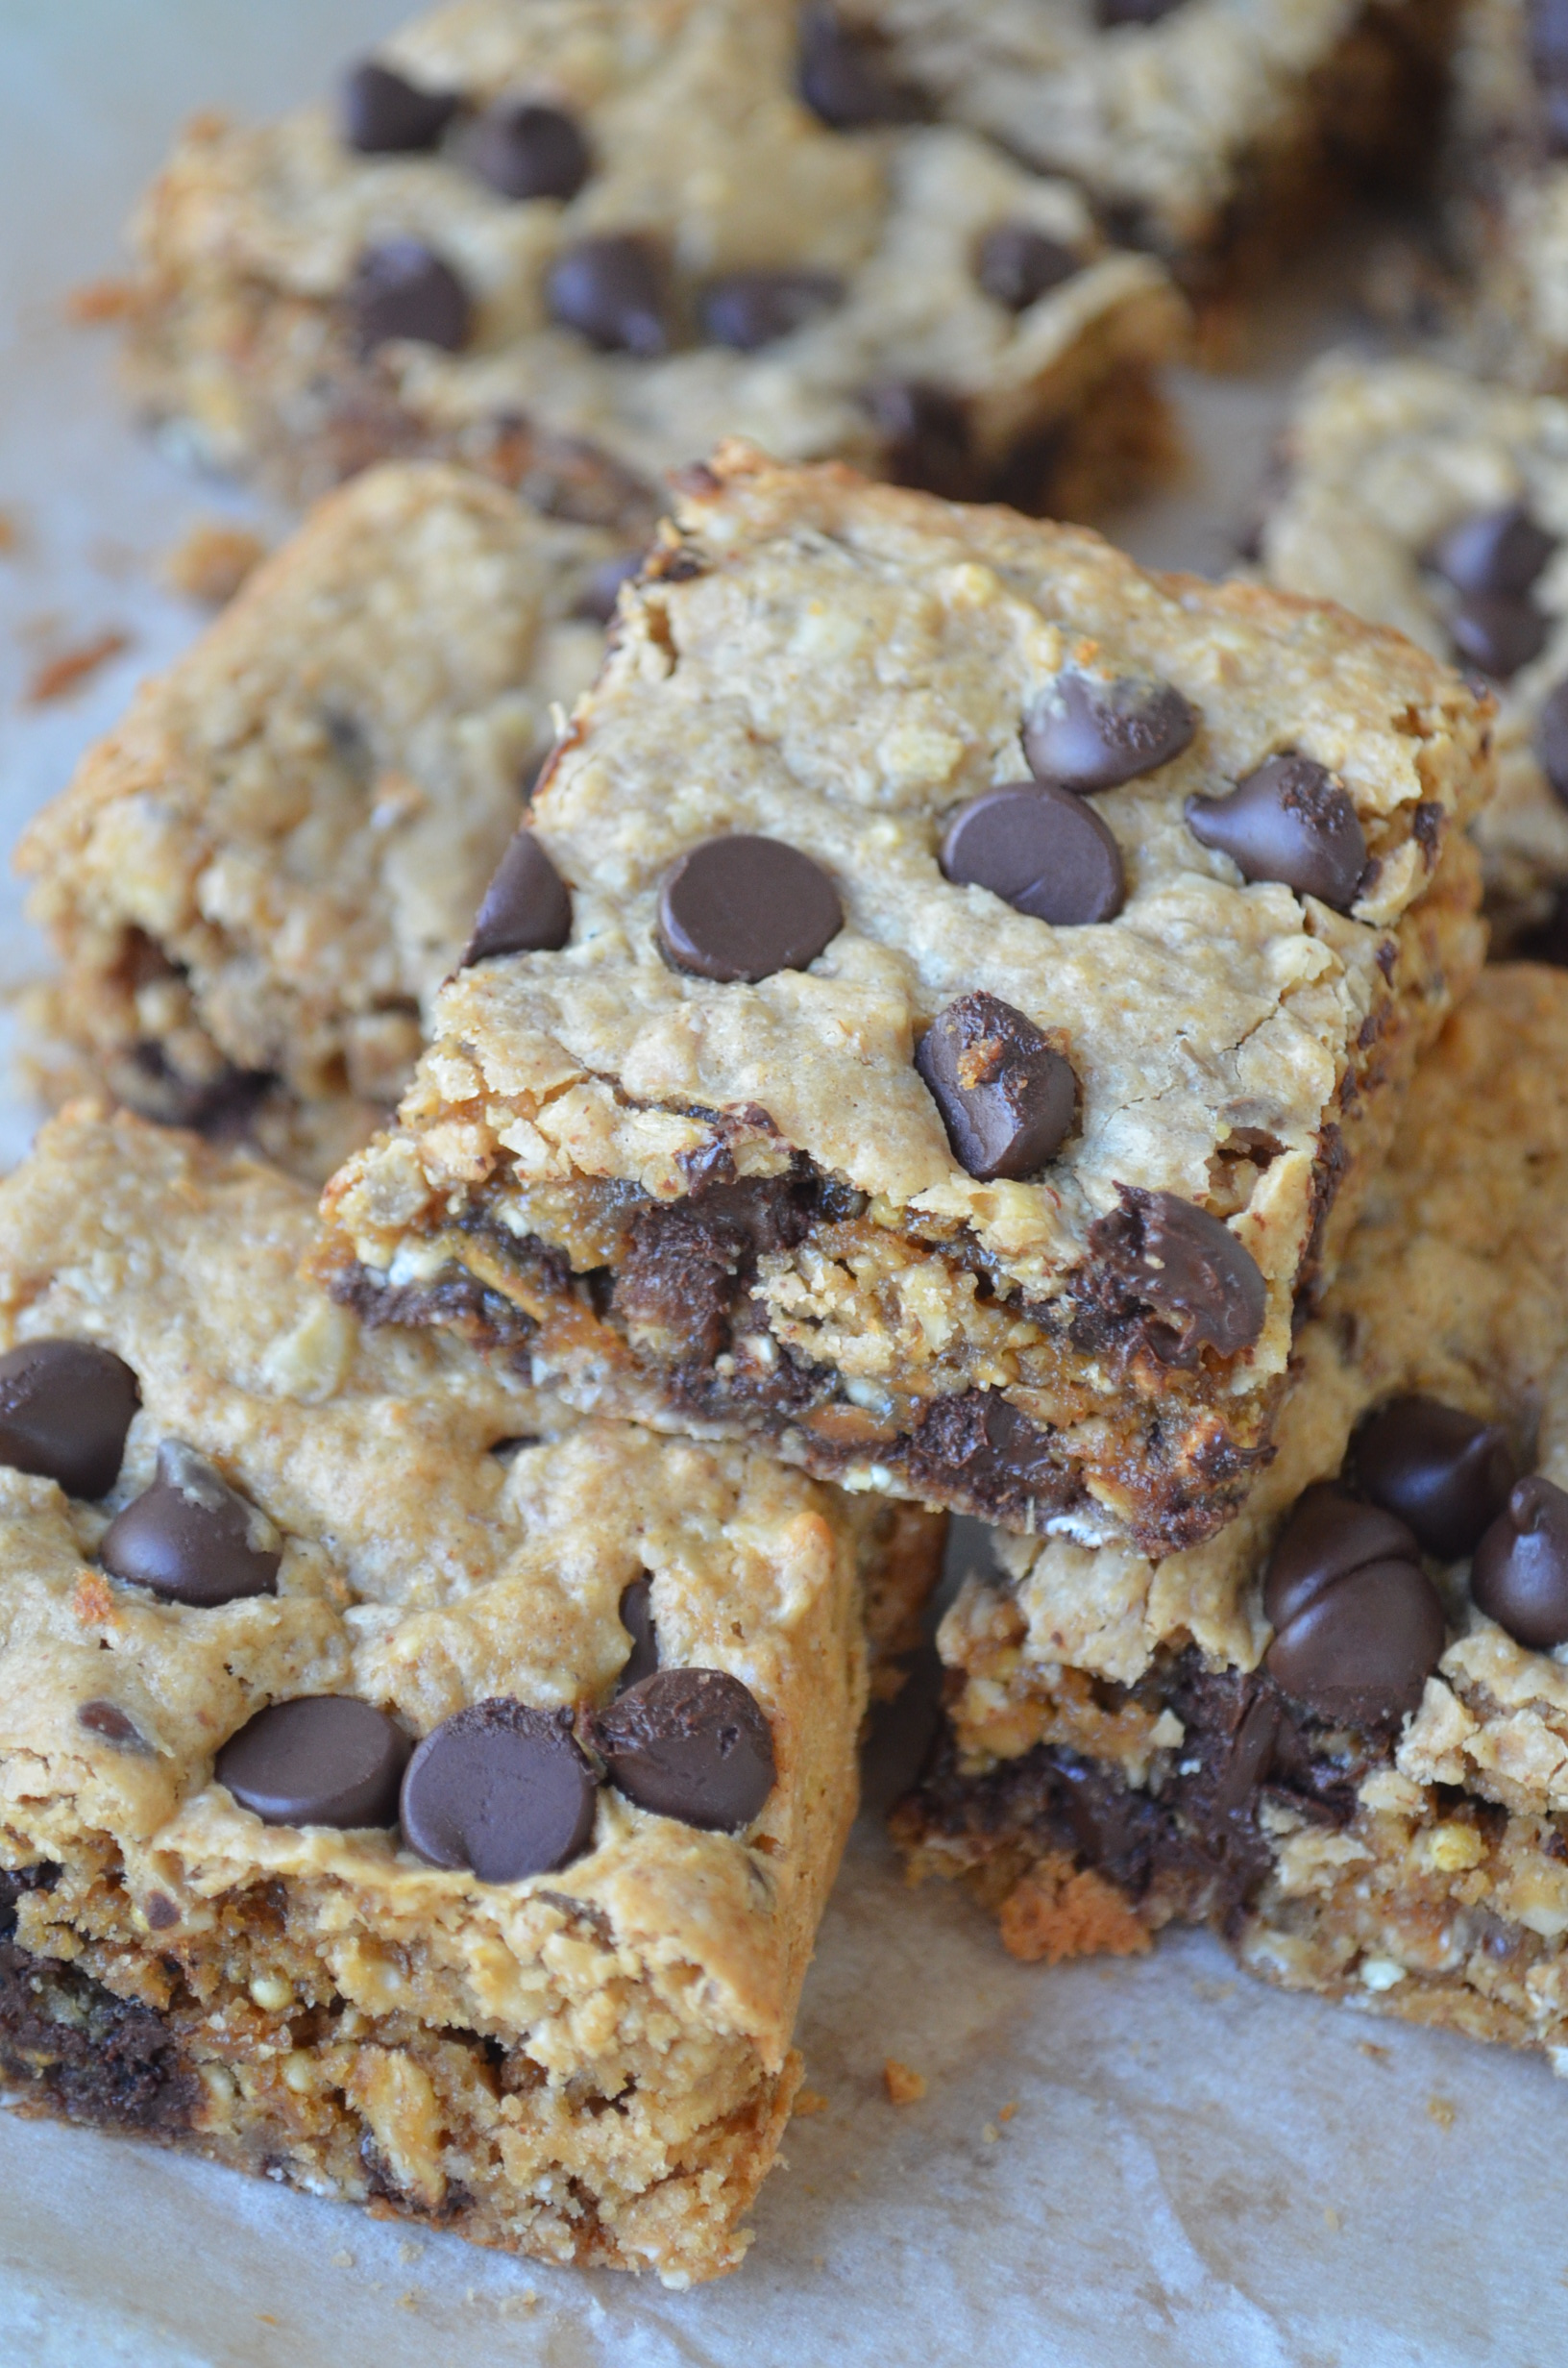 Peanut Butter Chocolate Chip Oats Bar